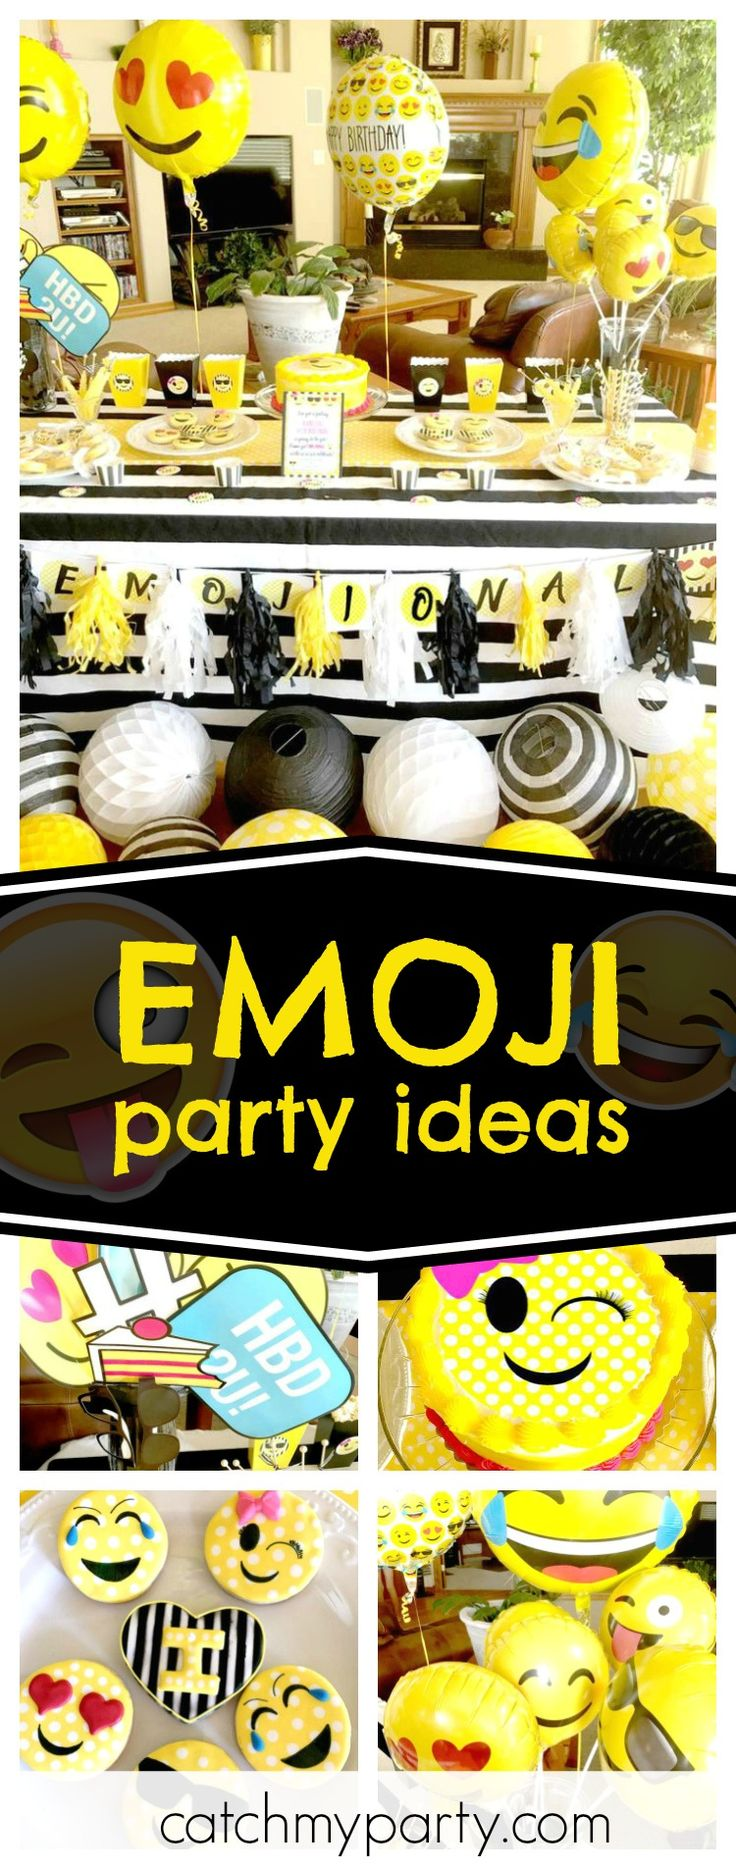 131 best Emoji Party Ideas images on Pinterest Birthdays